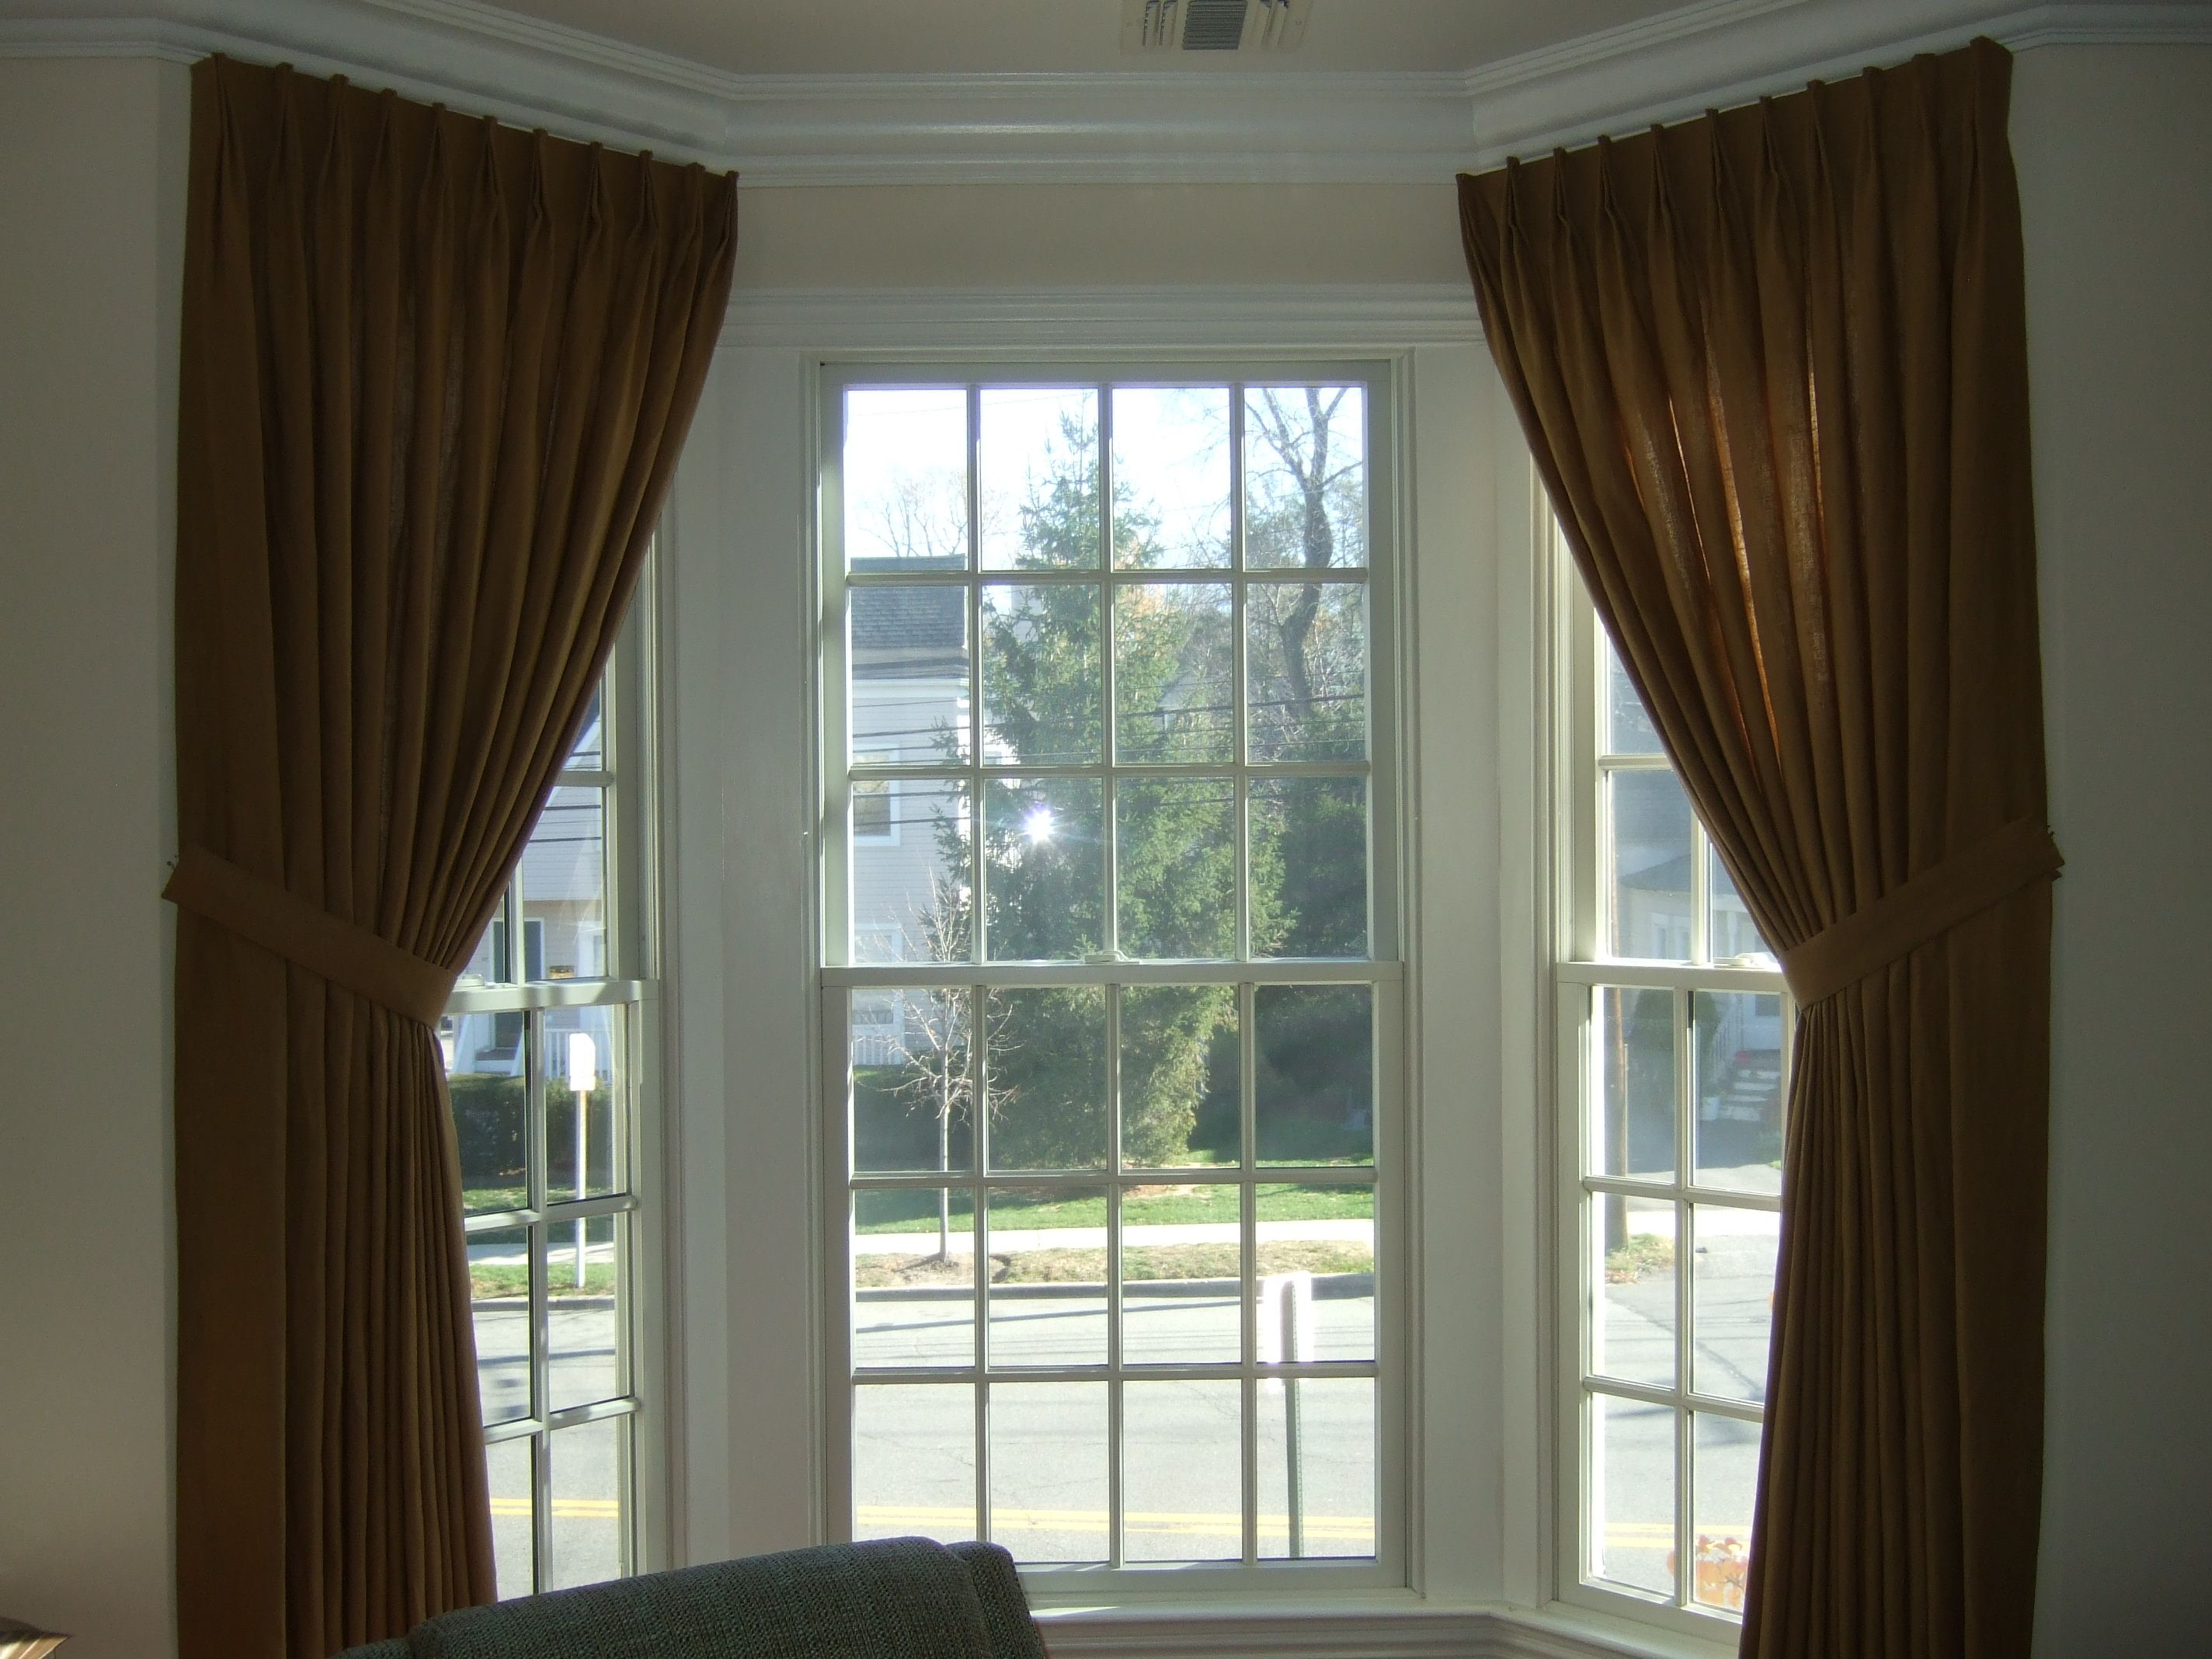 Curtains On Bay Windows Design Decor Photos Pictures Ideas Inspiration Paint Colors And Bay Window Living Room Curtains Living Room Living Room Windows